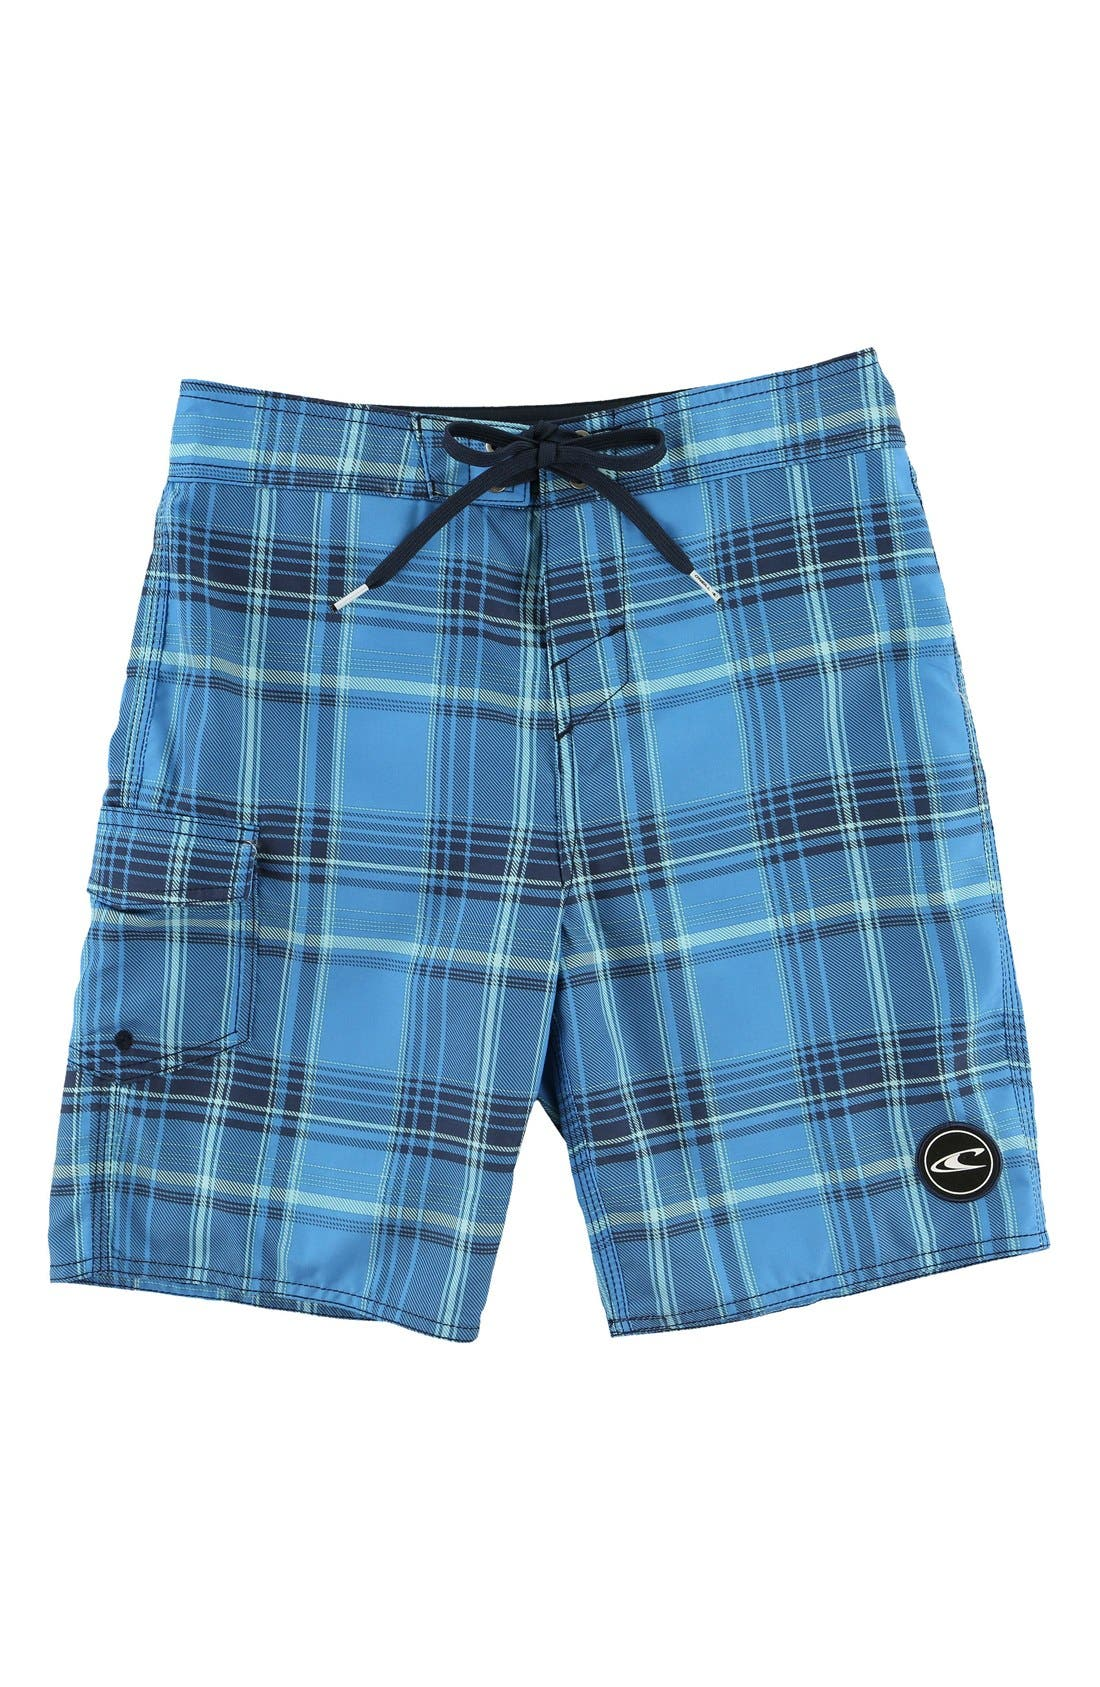 O'Neill Santa Cruz Plaid Board Shorts (Big Boys)